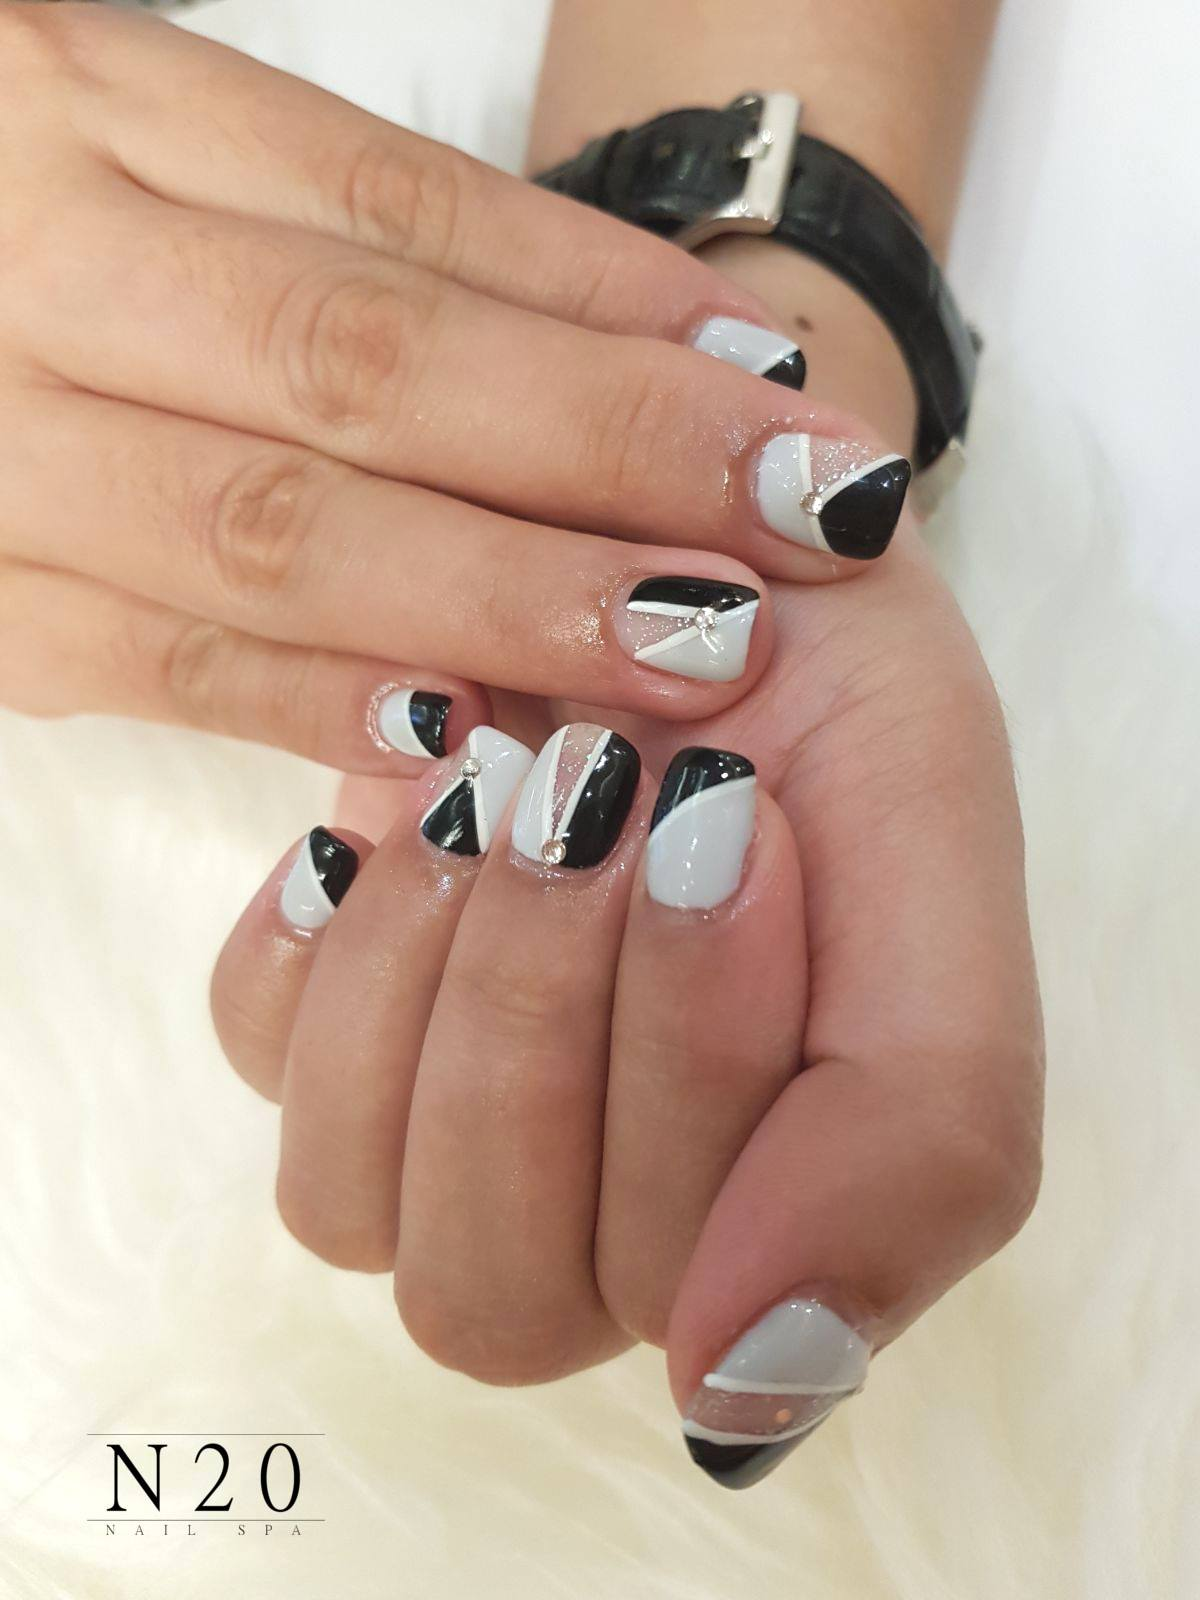 Black grey white stripe center studded manicure nail art - N20 Nail Spa